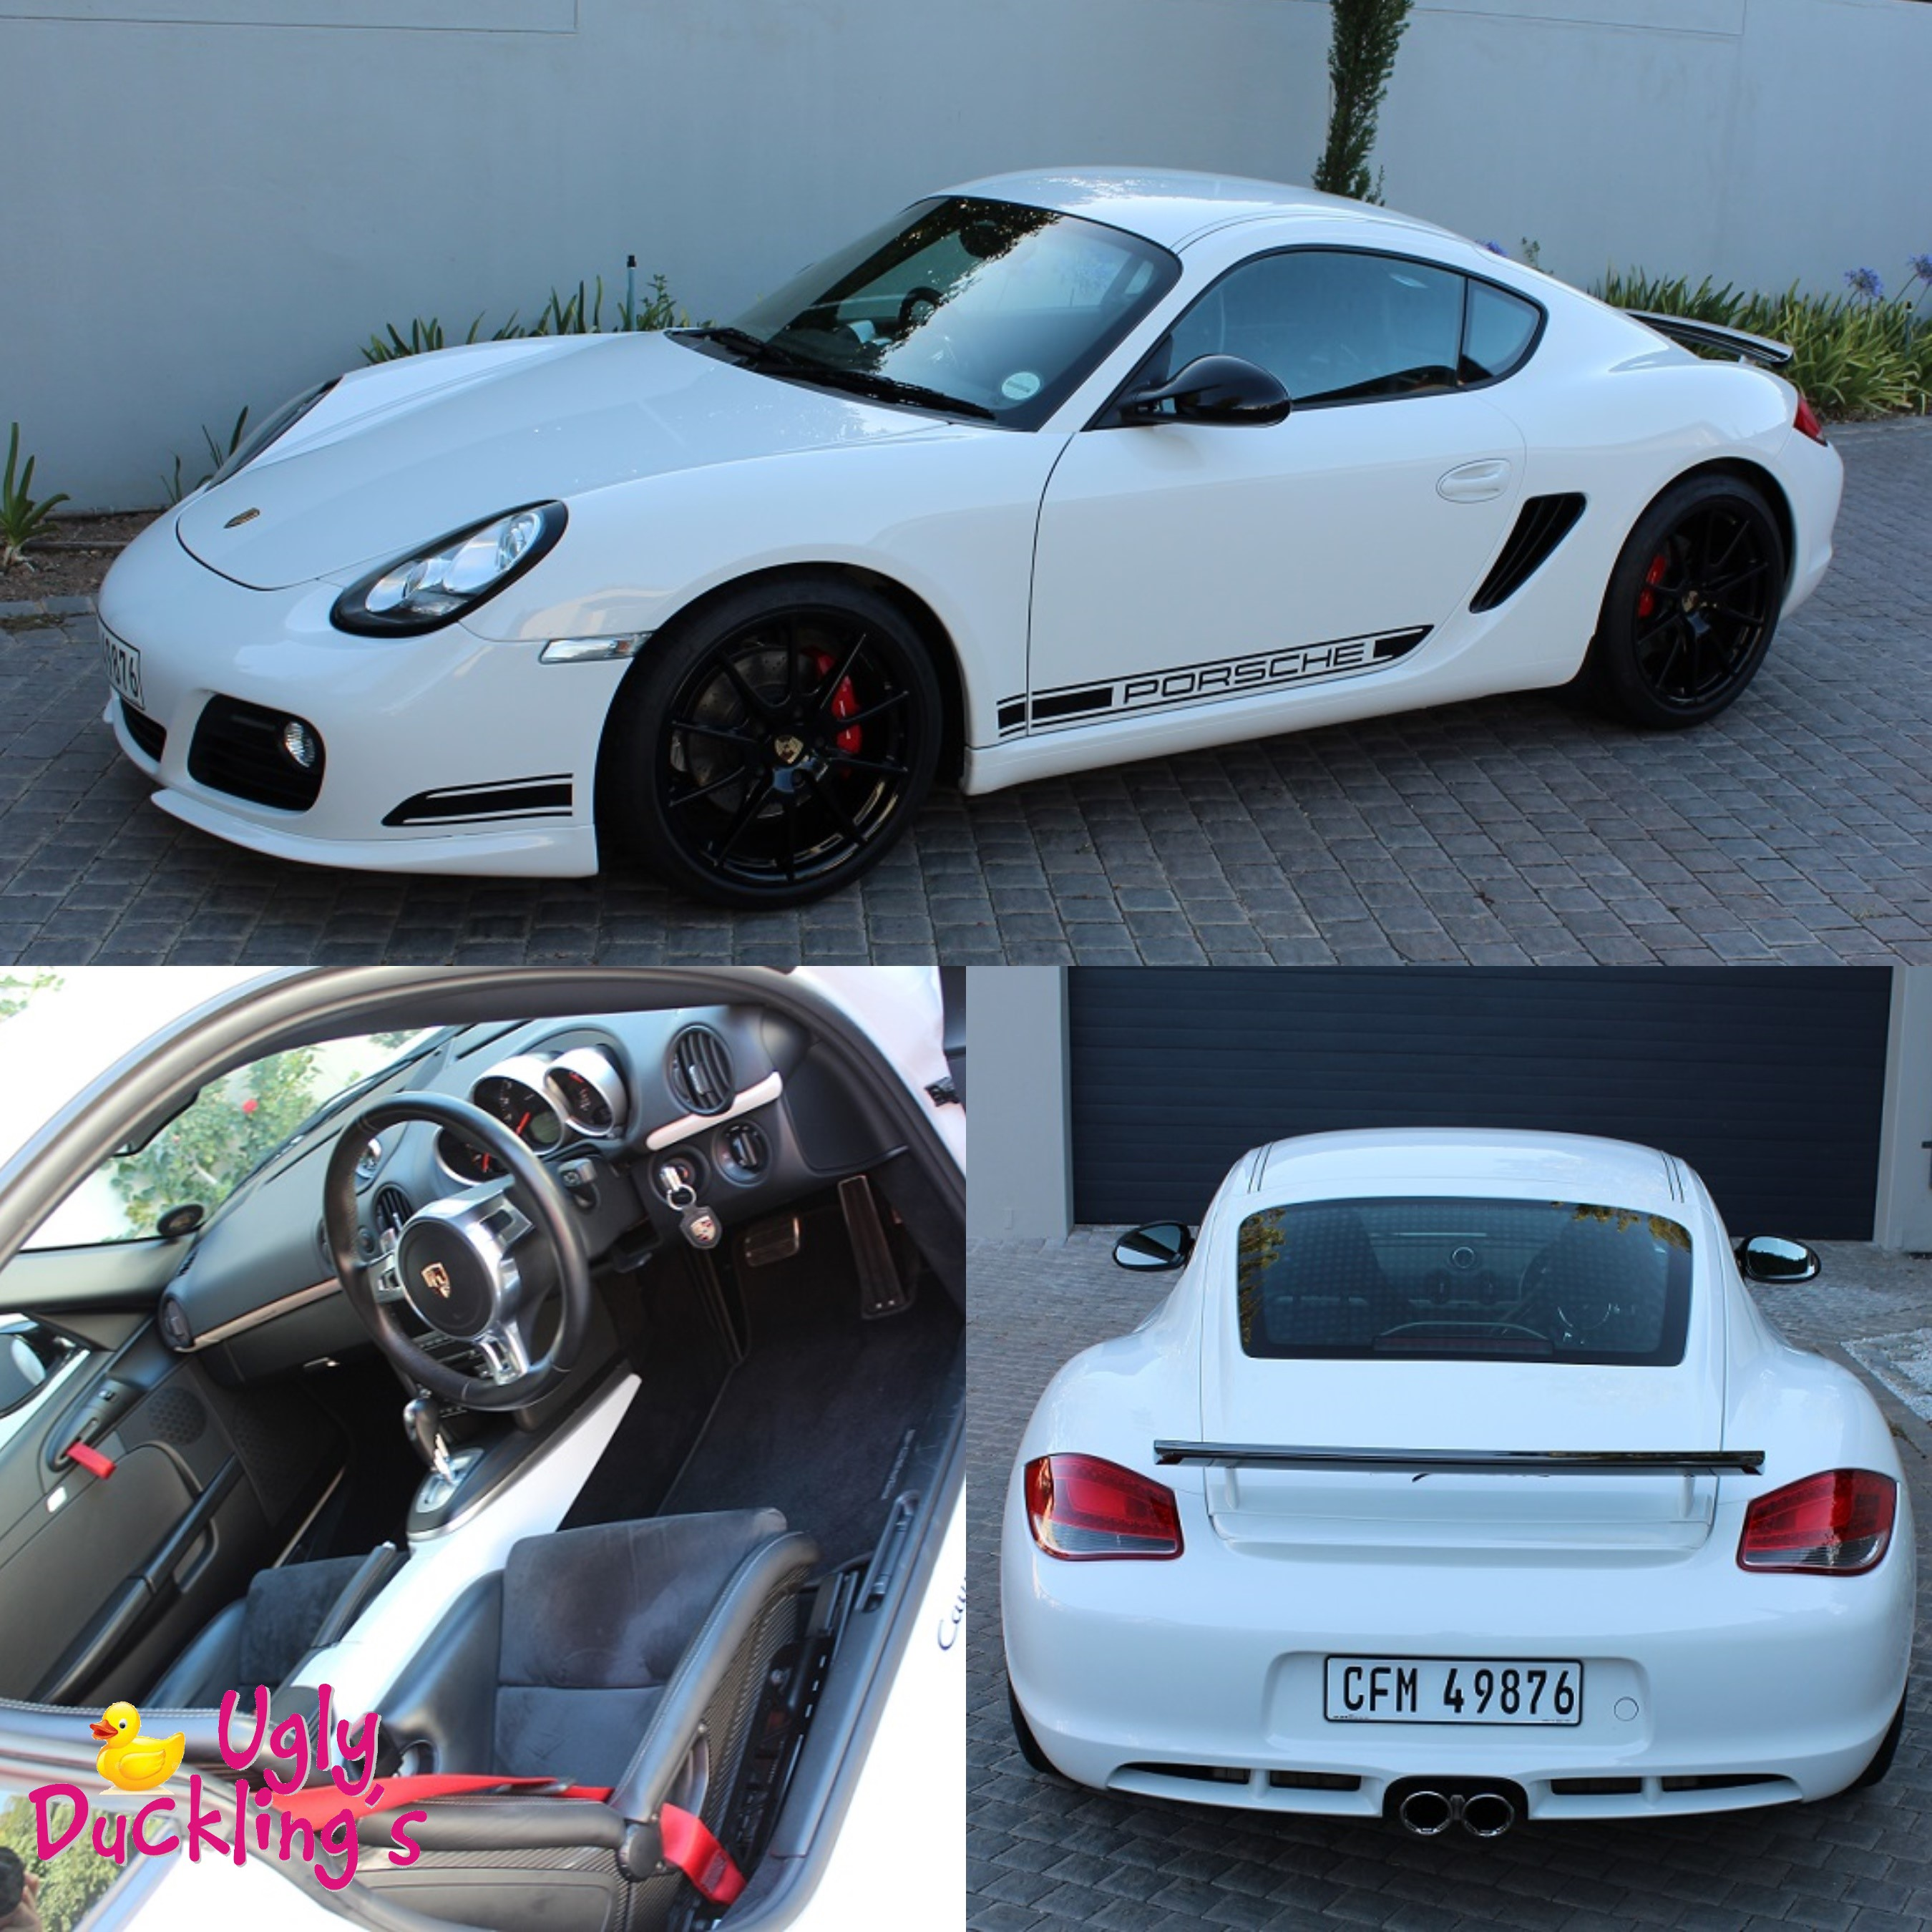 2012 Porsche Cayman Camshaft: Cars And Vehicles For Movies And Photoshoots